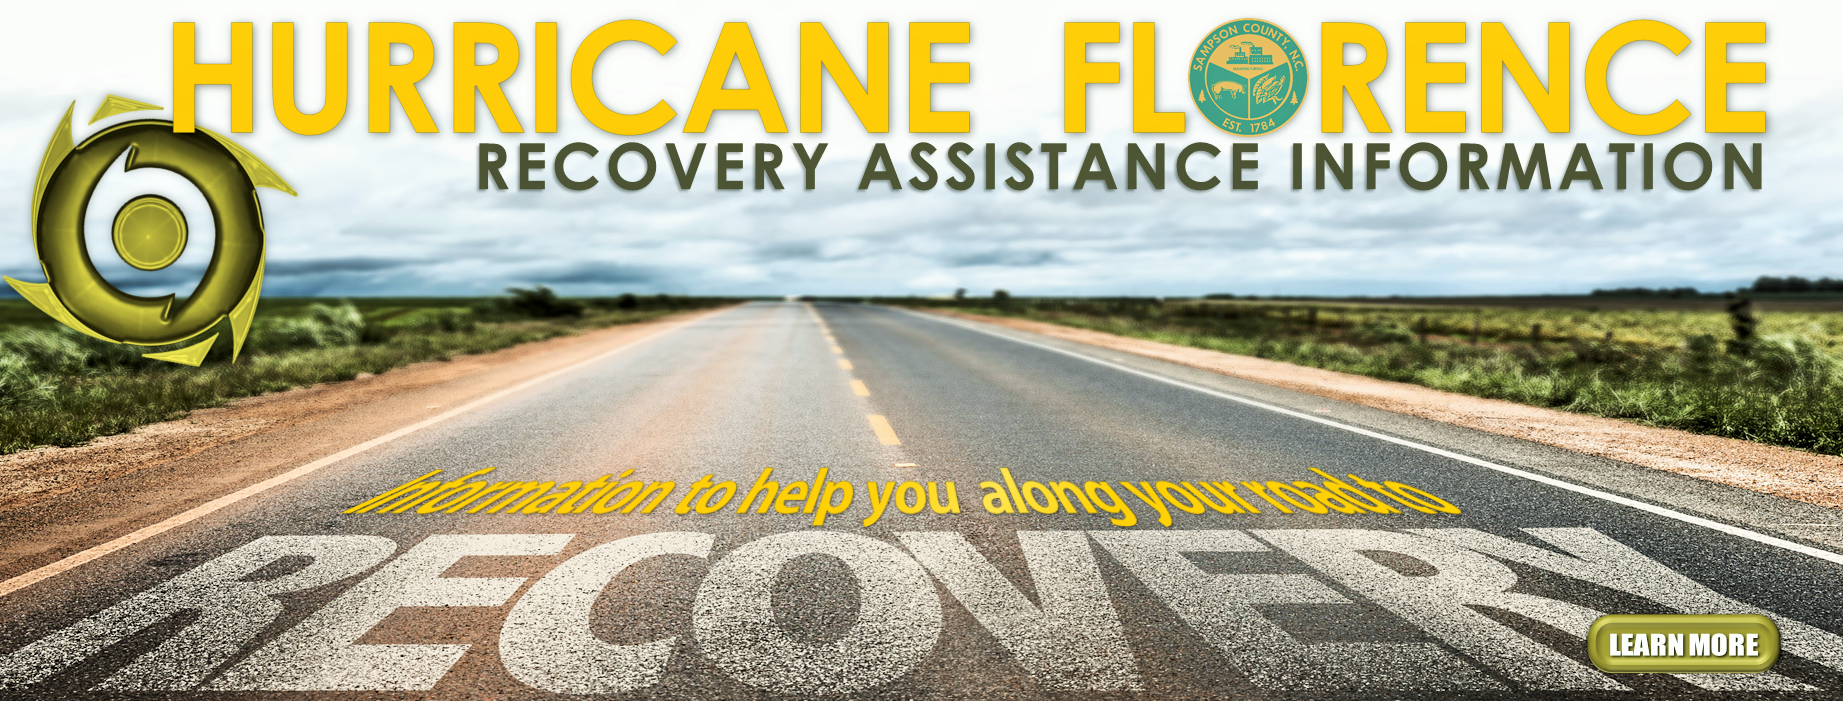 florence recovery assistance banner